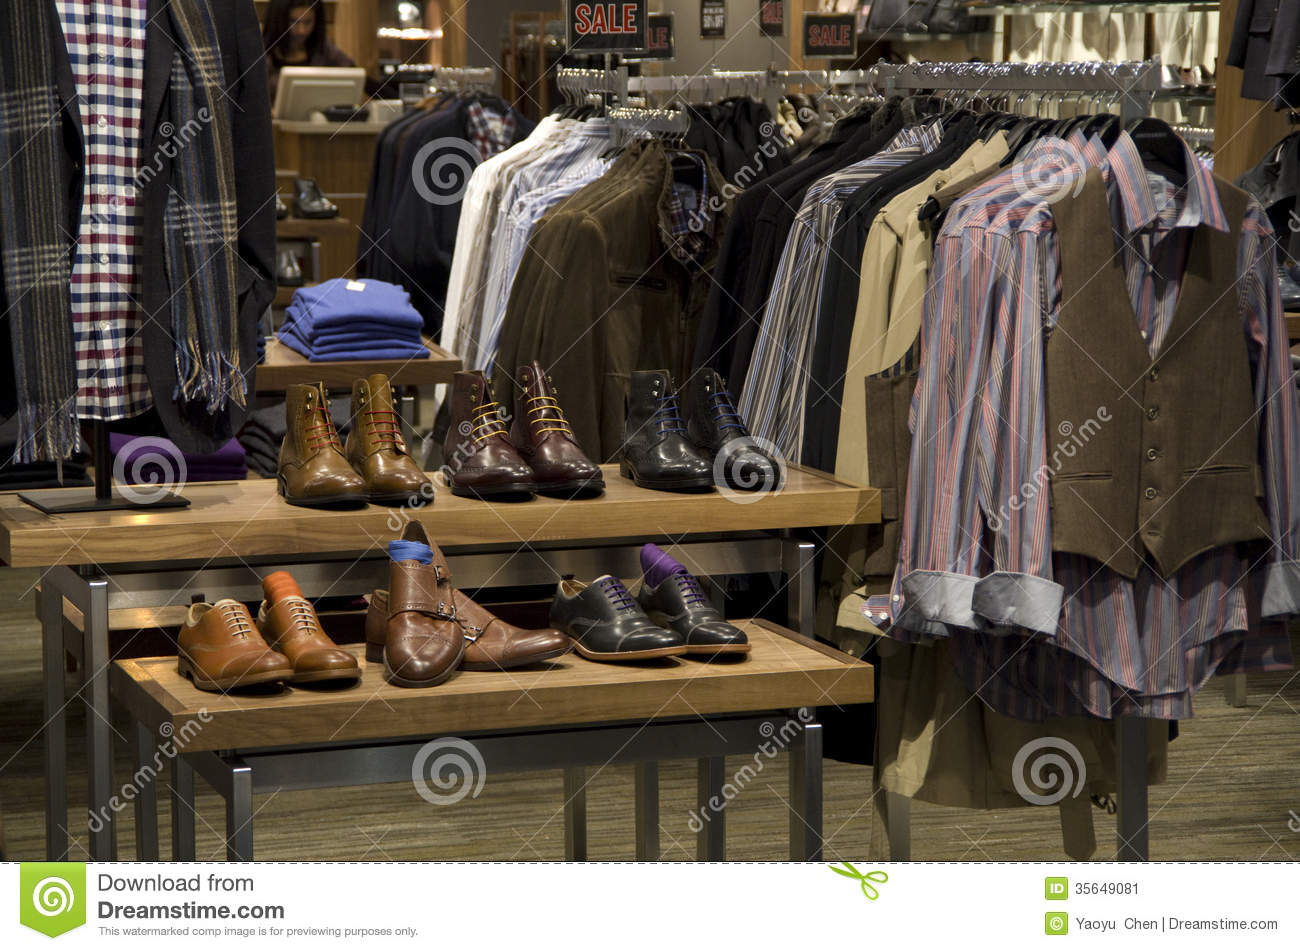 The basement clothing and shoe store